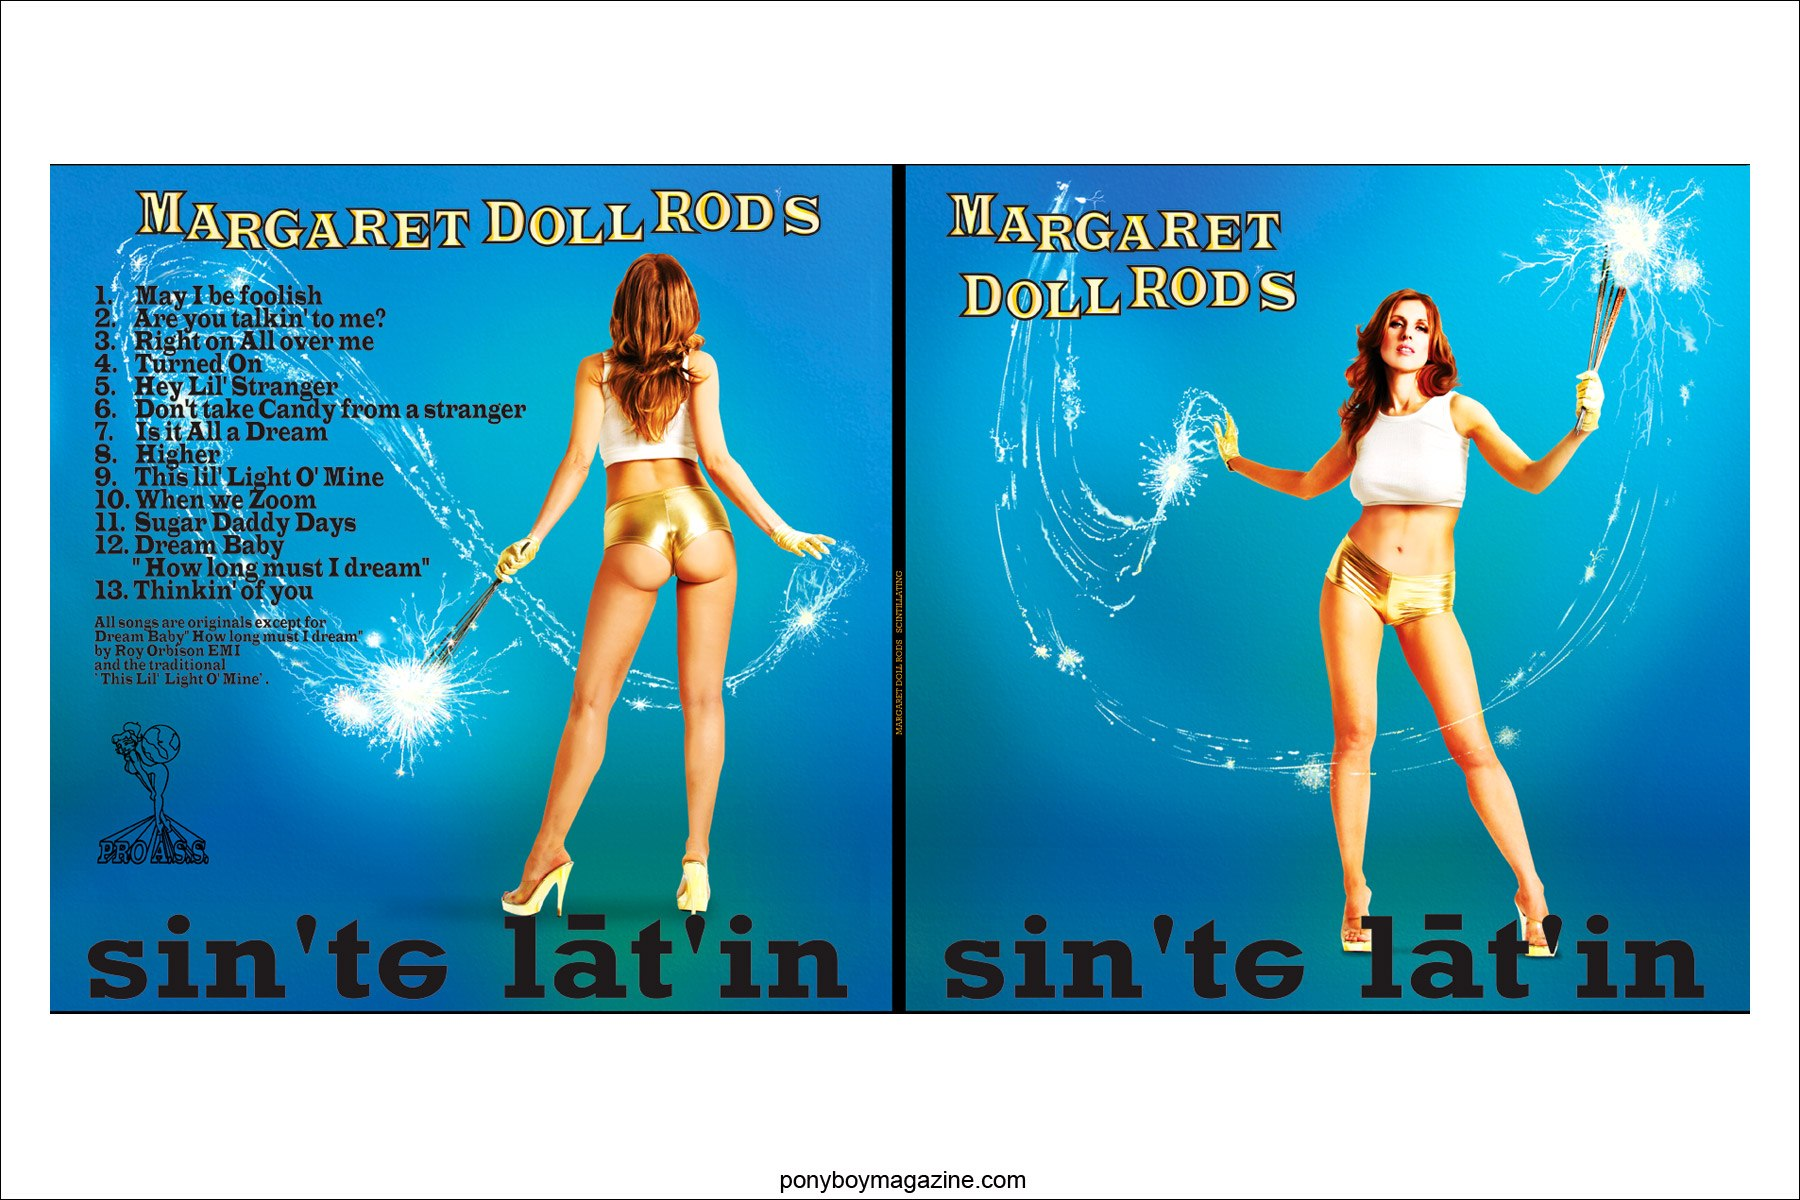 Margaret Doll Rod cover art by digital artist Scott Ewalt, Ponyboy Magazine.